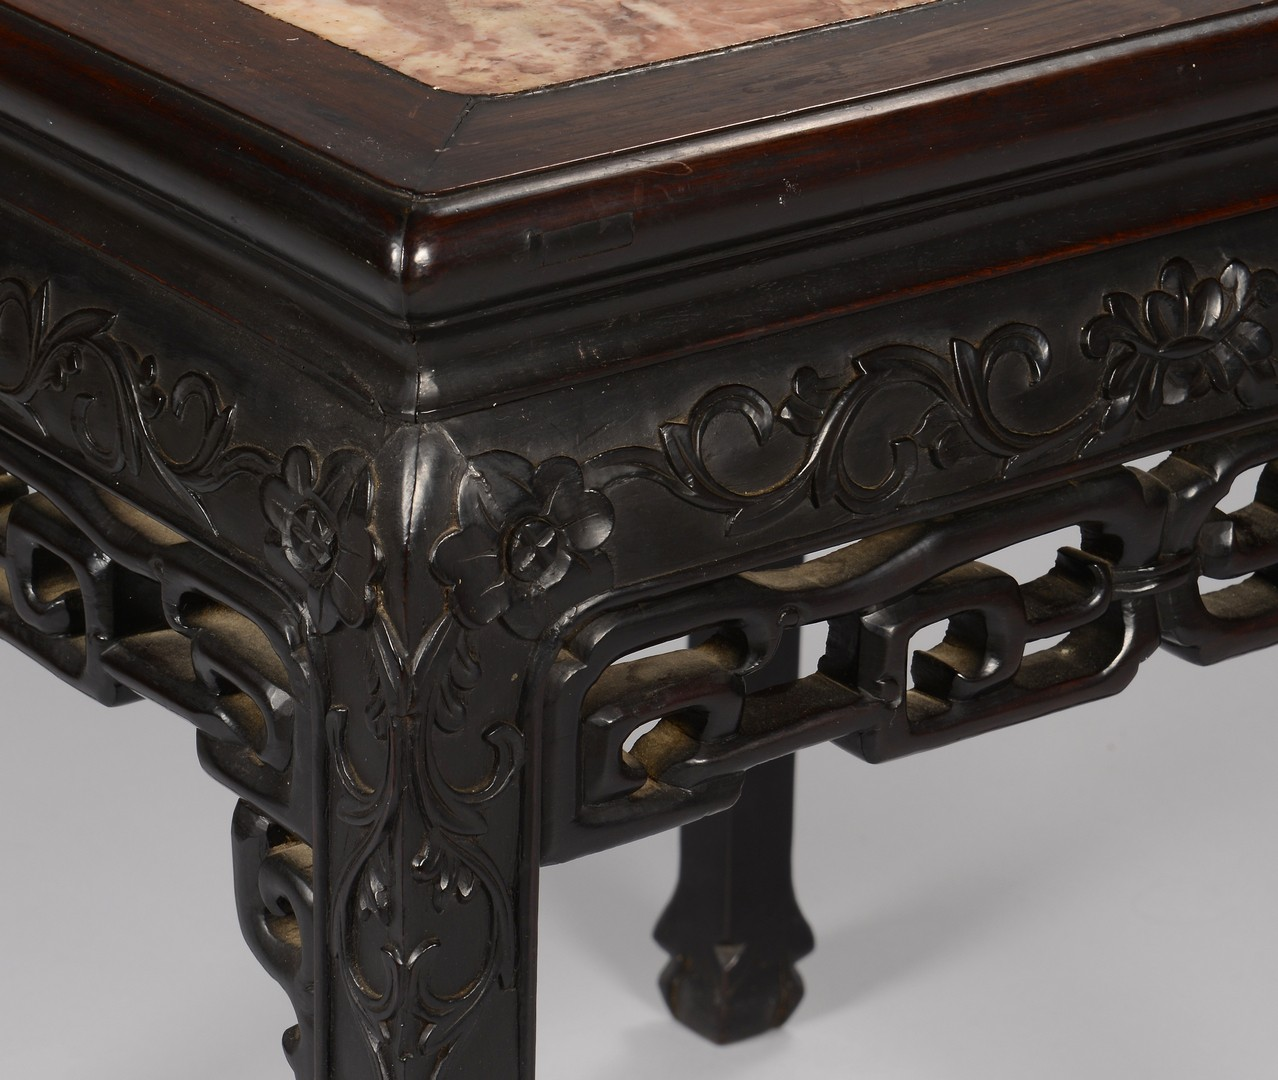 Lot 3594210: Chinese Hardwood Side Table w/ Marble Top